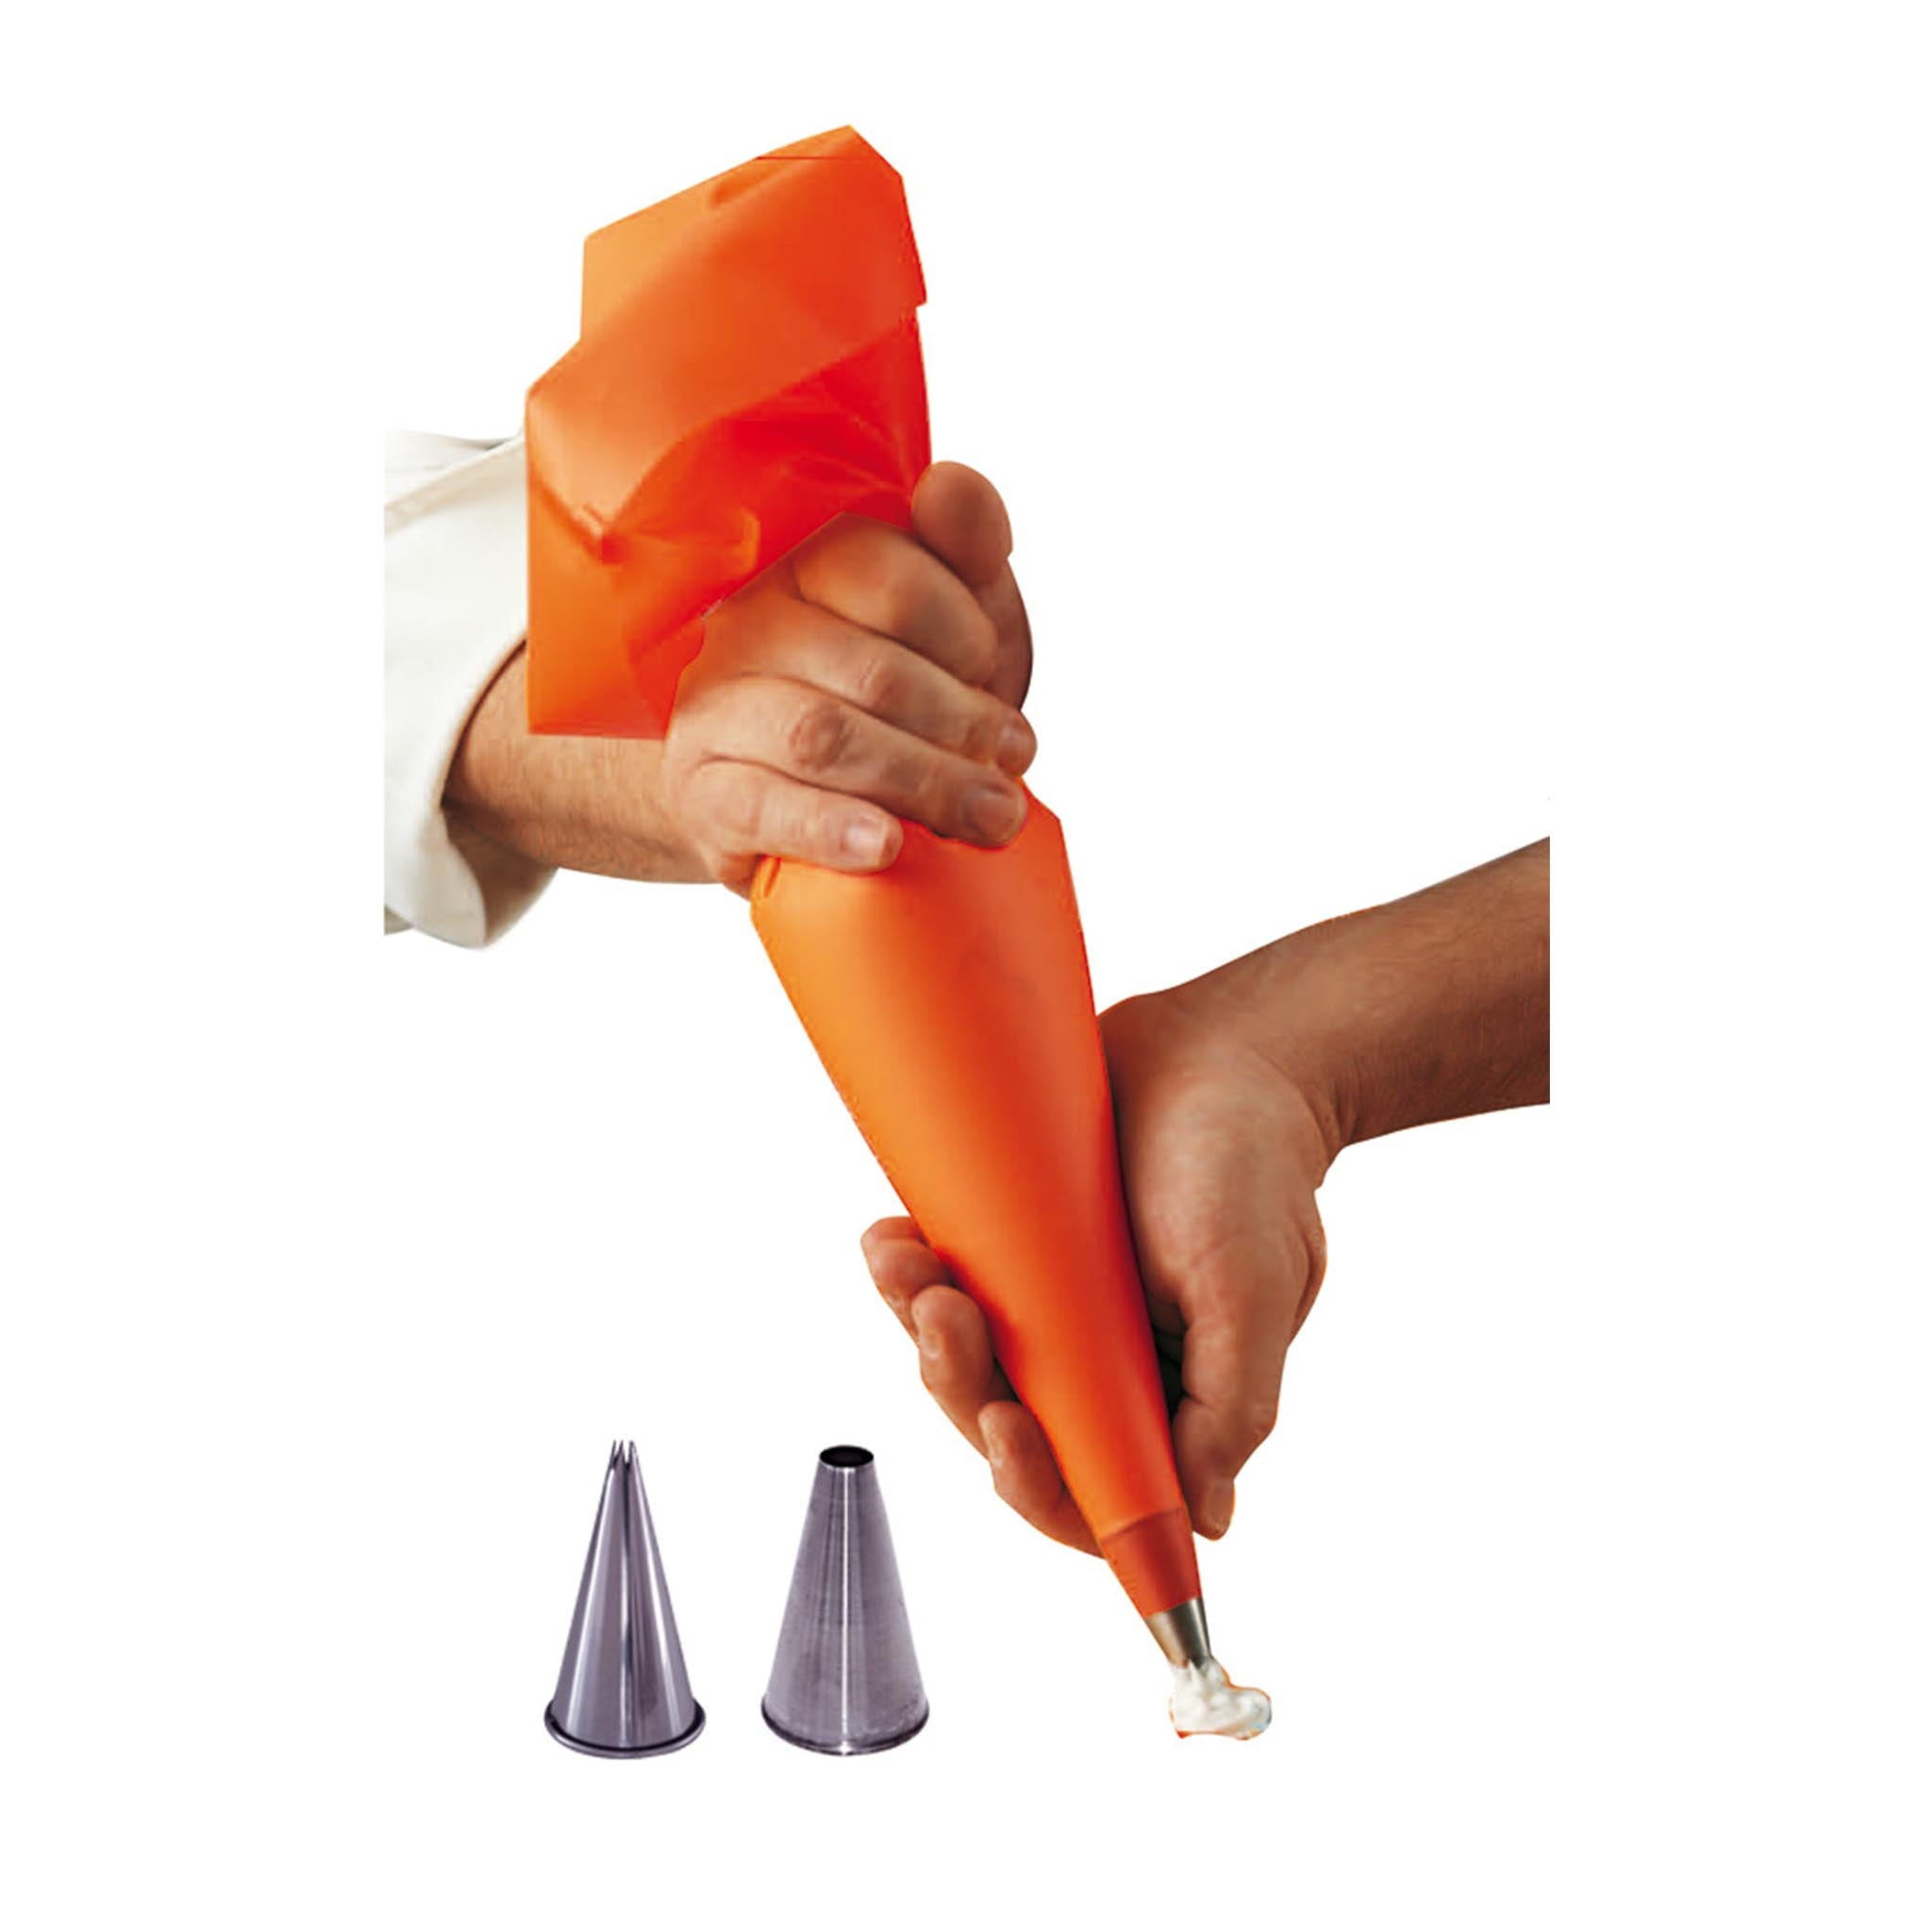 De Buyer Reusable Piping Bag Set Buy Online Today At